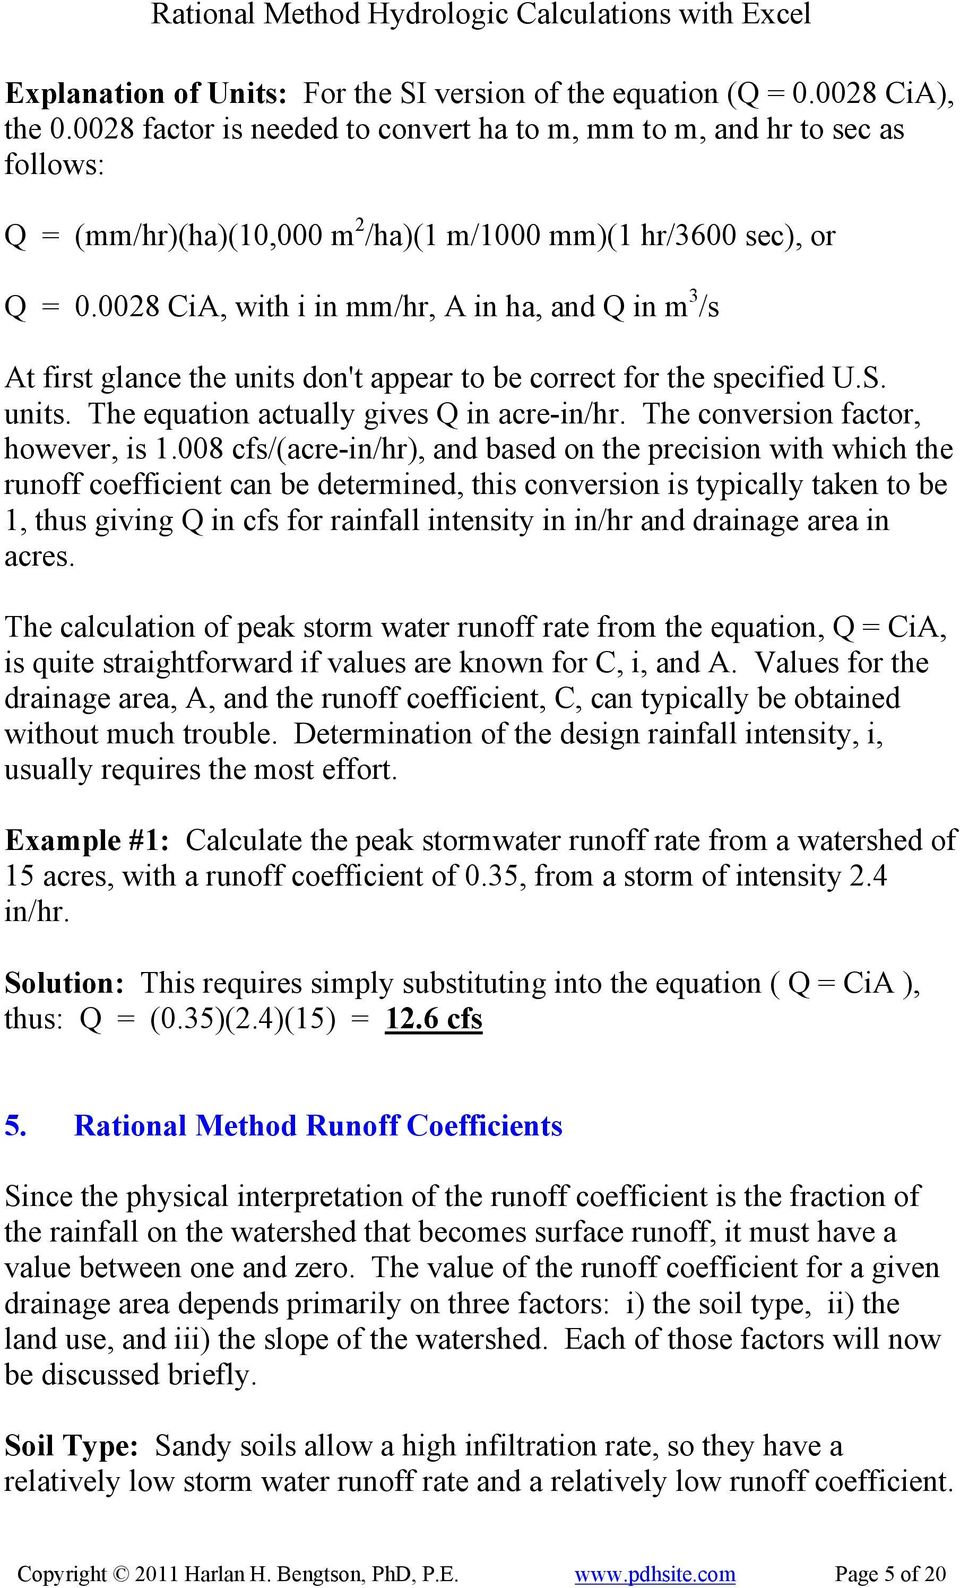 0028 CiA, with i in mm/hr, A in ha, and Q in m 3 /s At first glance the units don't appear to be correct for the specified U.S. units. The equation actually gives Q in acre-in/hr.